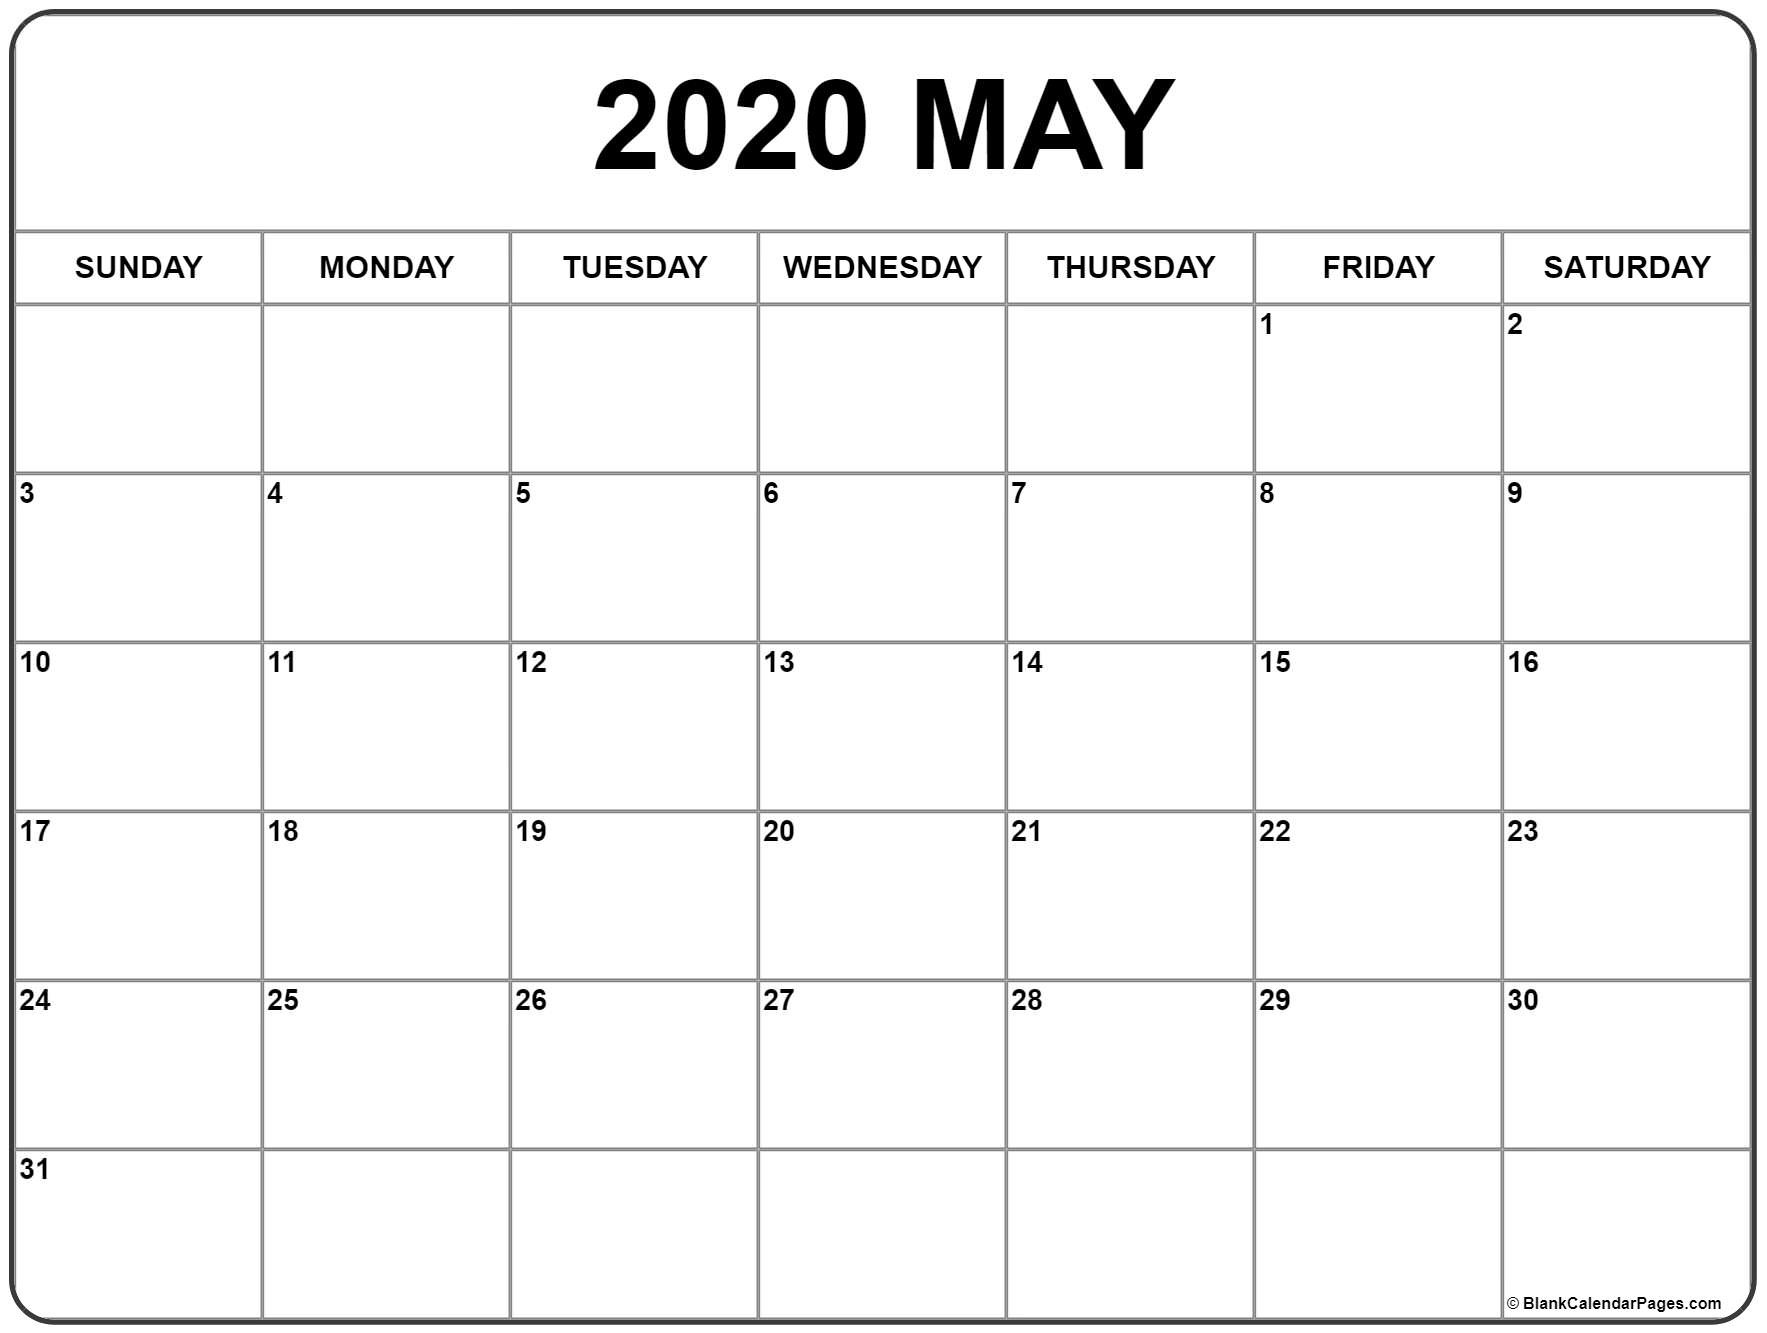 May 2020 Calendar | Free Printable Monthly Calendars  Calendar Printable 2020